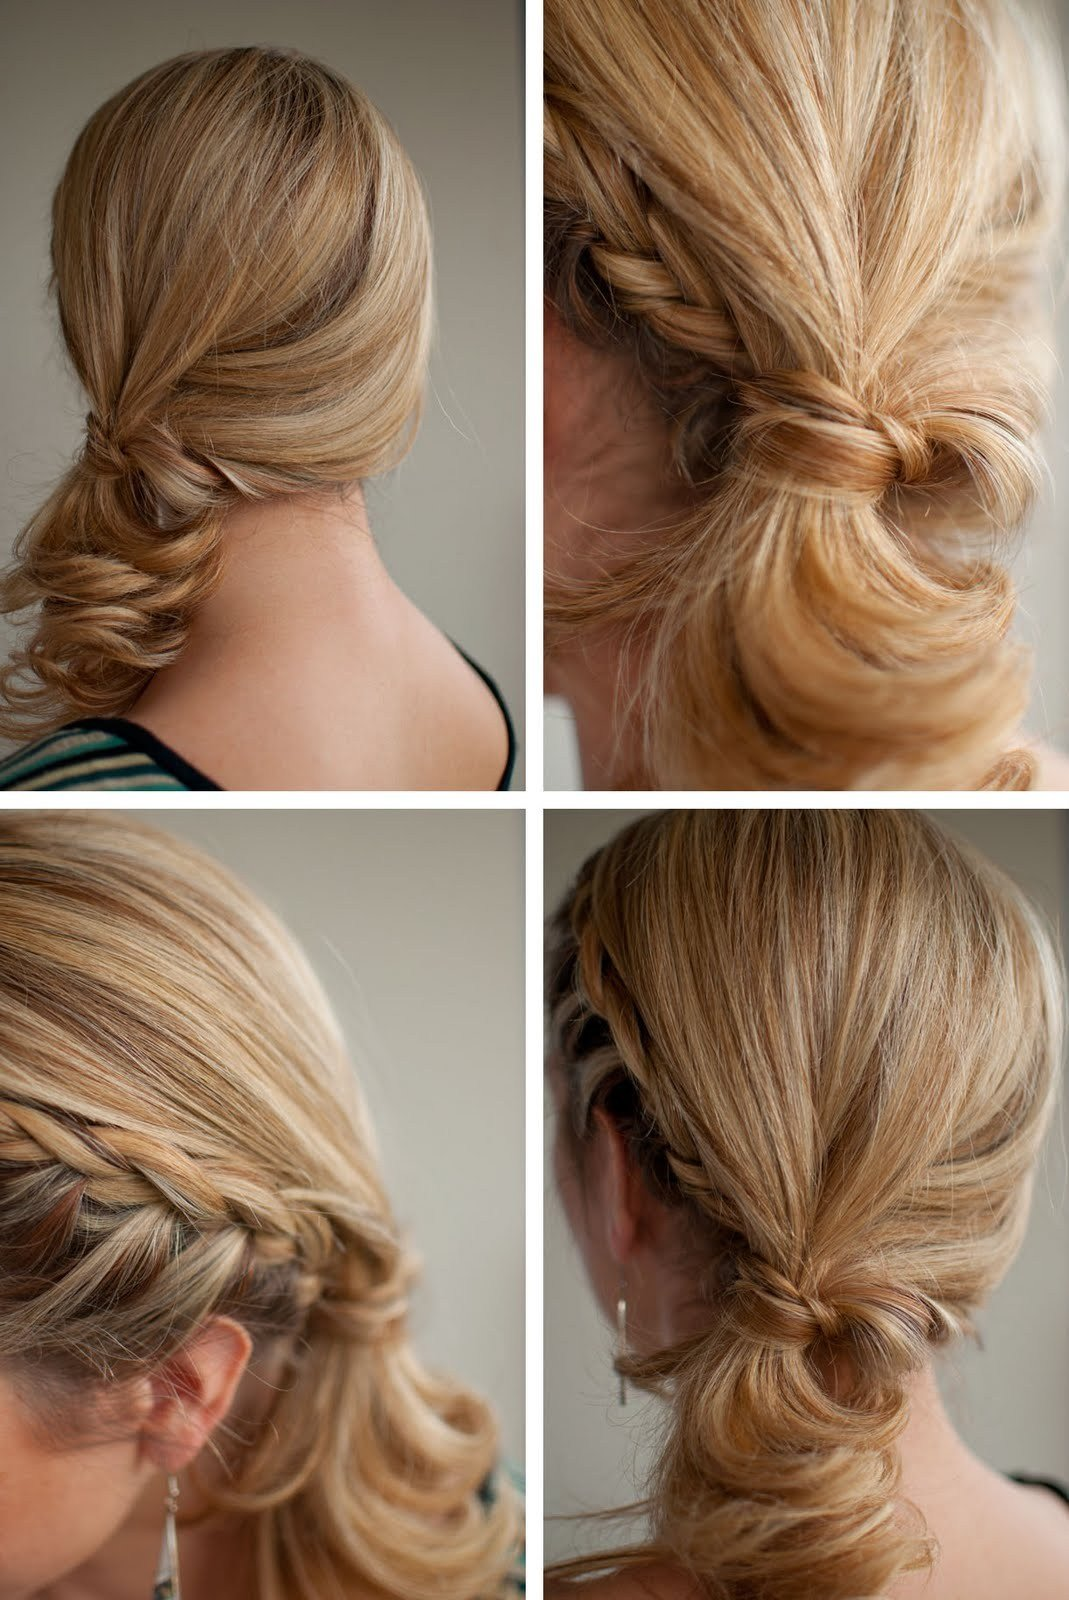 The Best Popular Ponytail Hair Styles Megapics Pictures